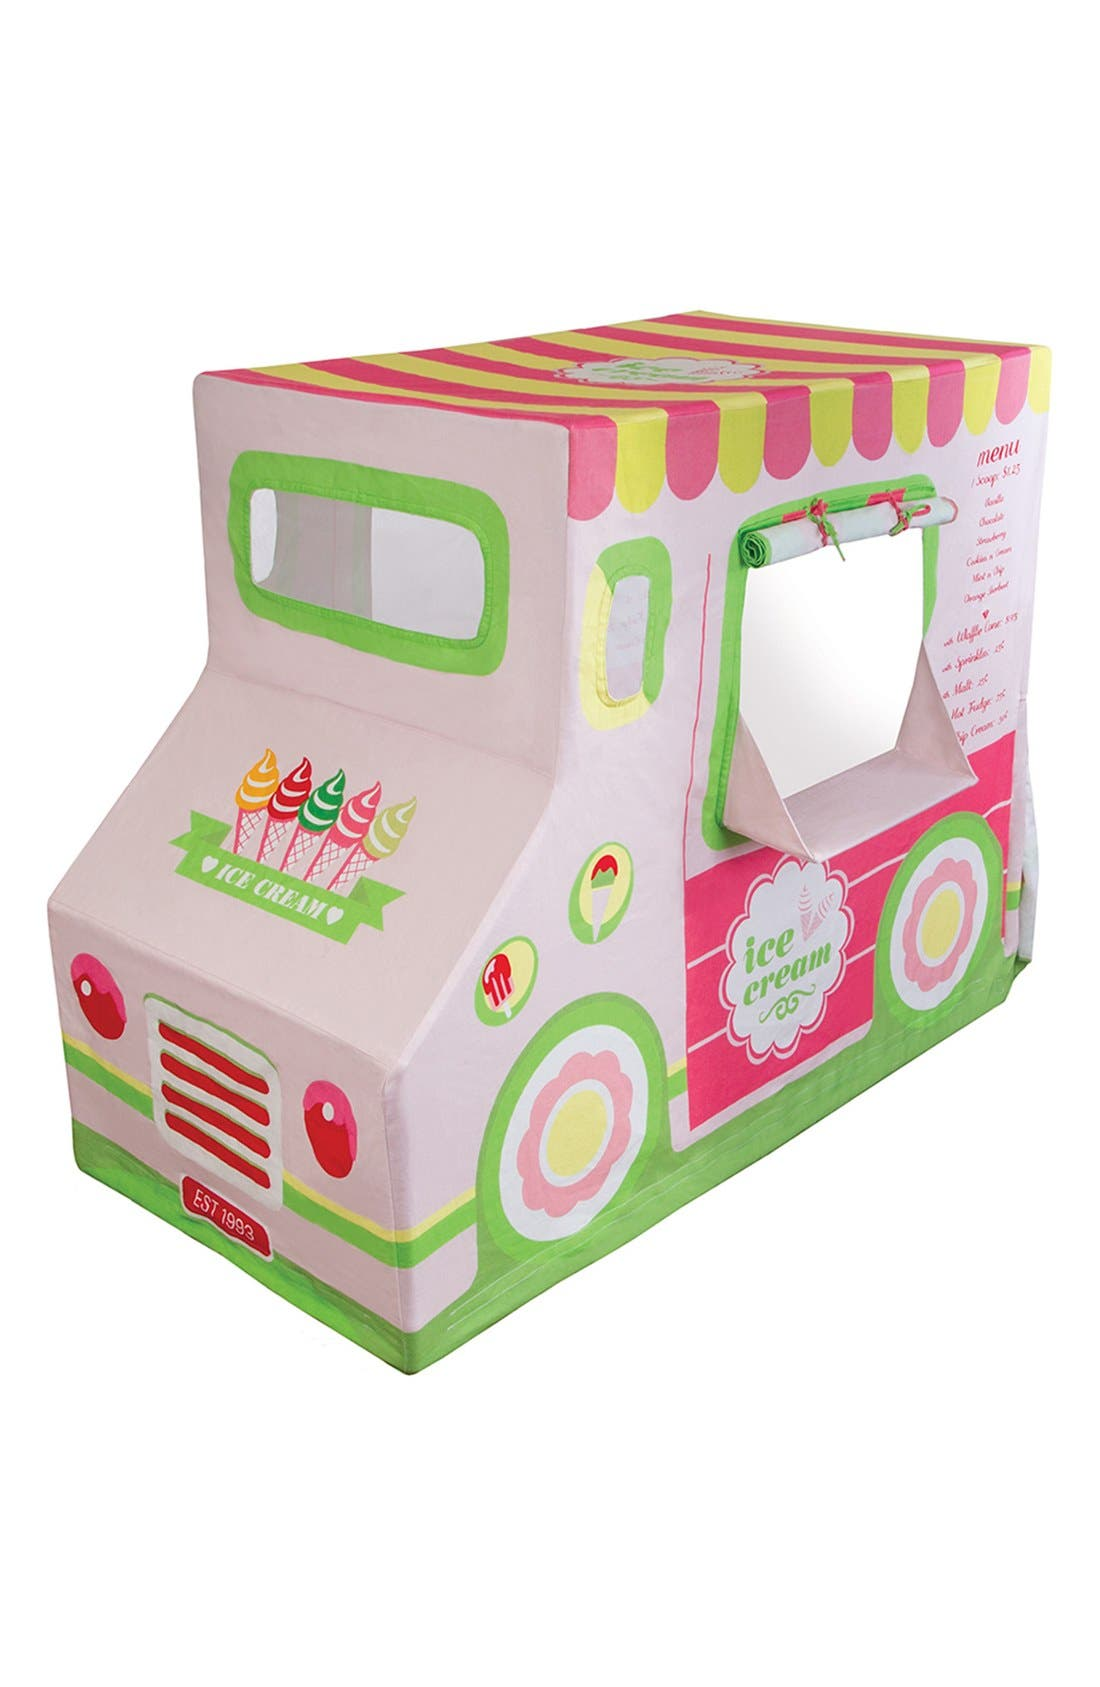 'Ice Cream Truck' Playhouse,                             Main thumbnail 1, color,                             Pink